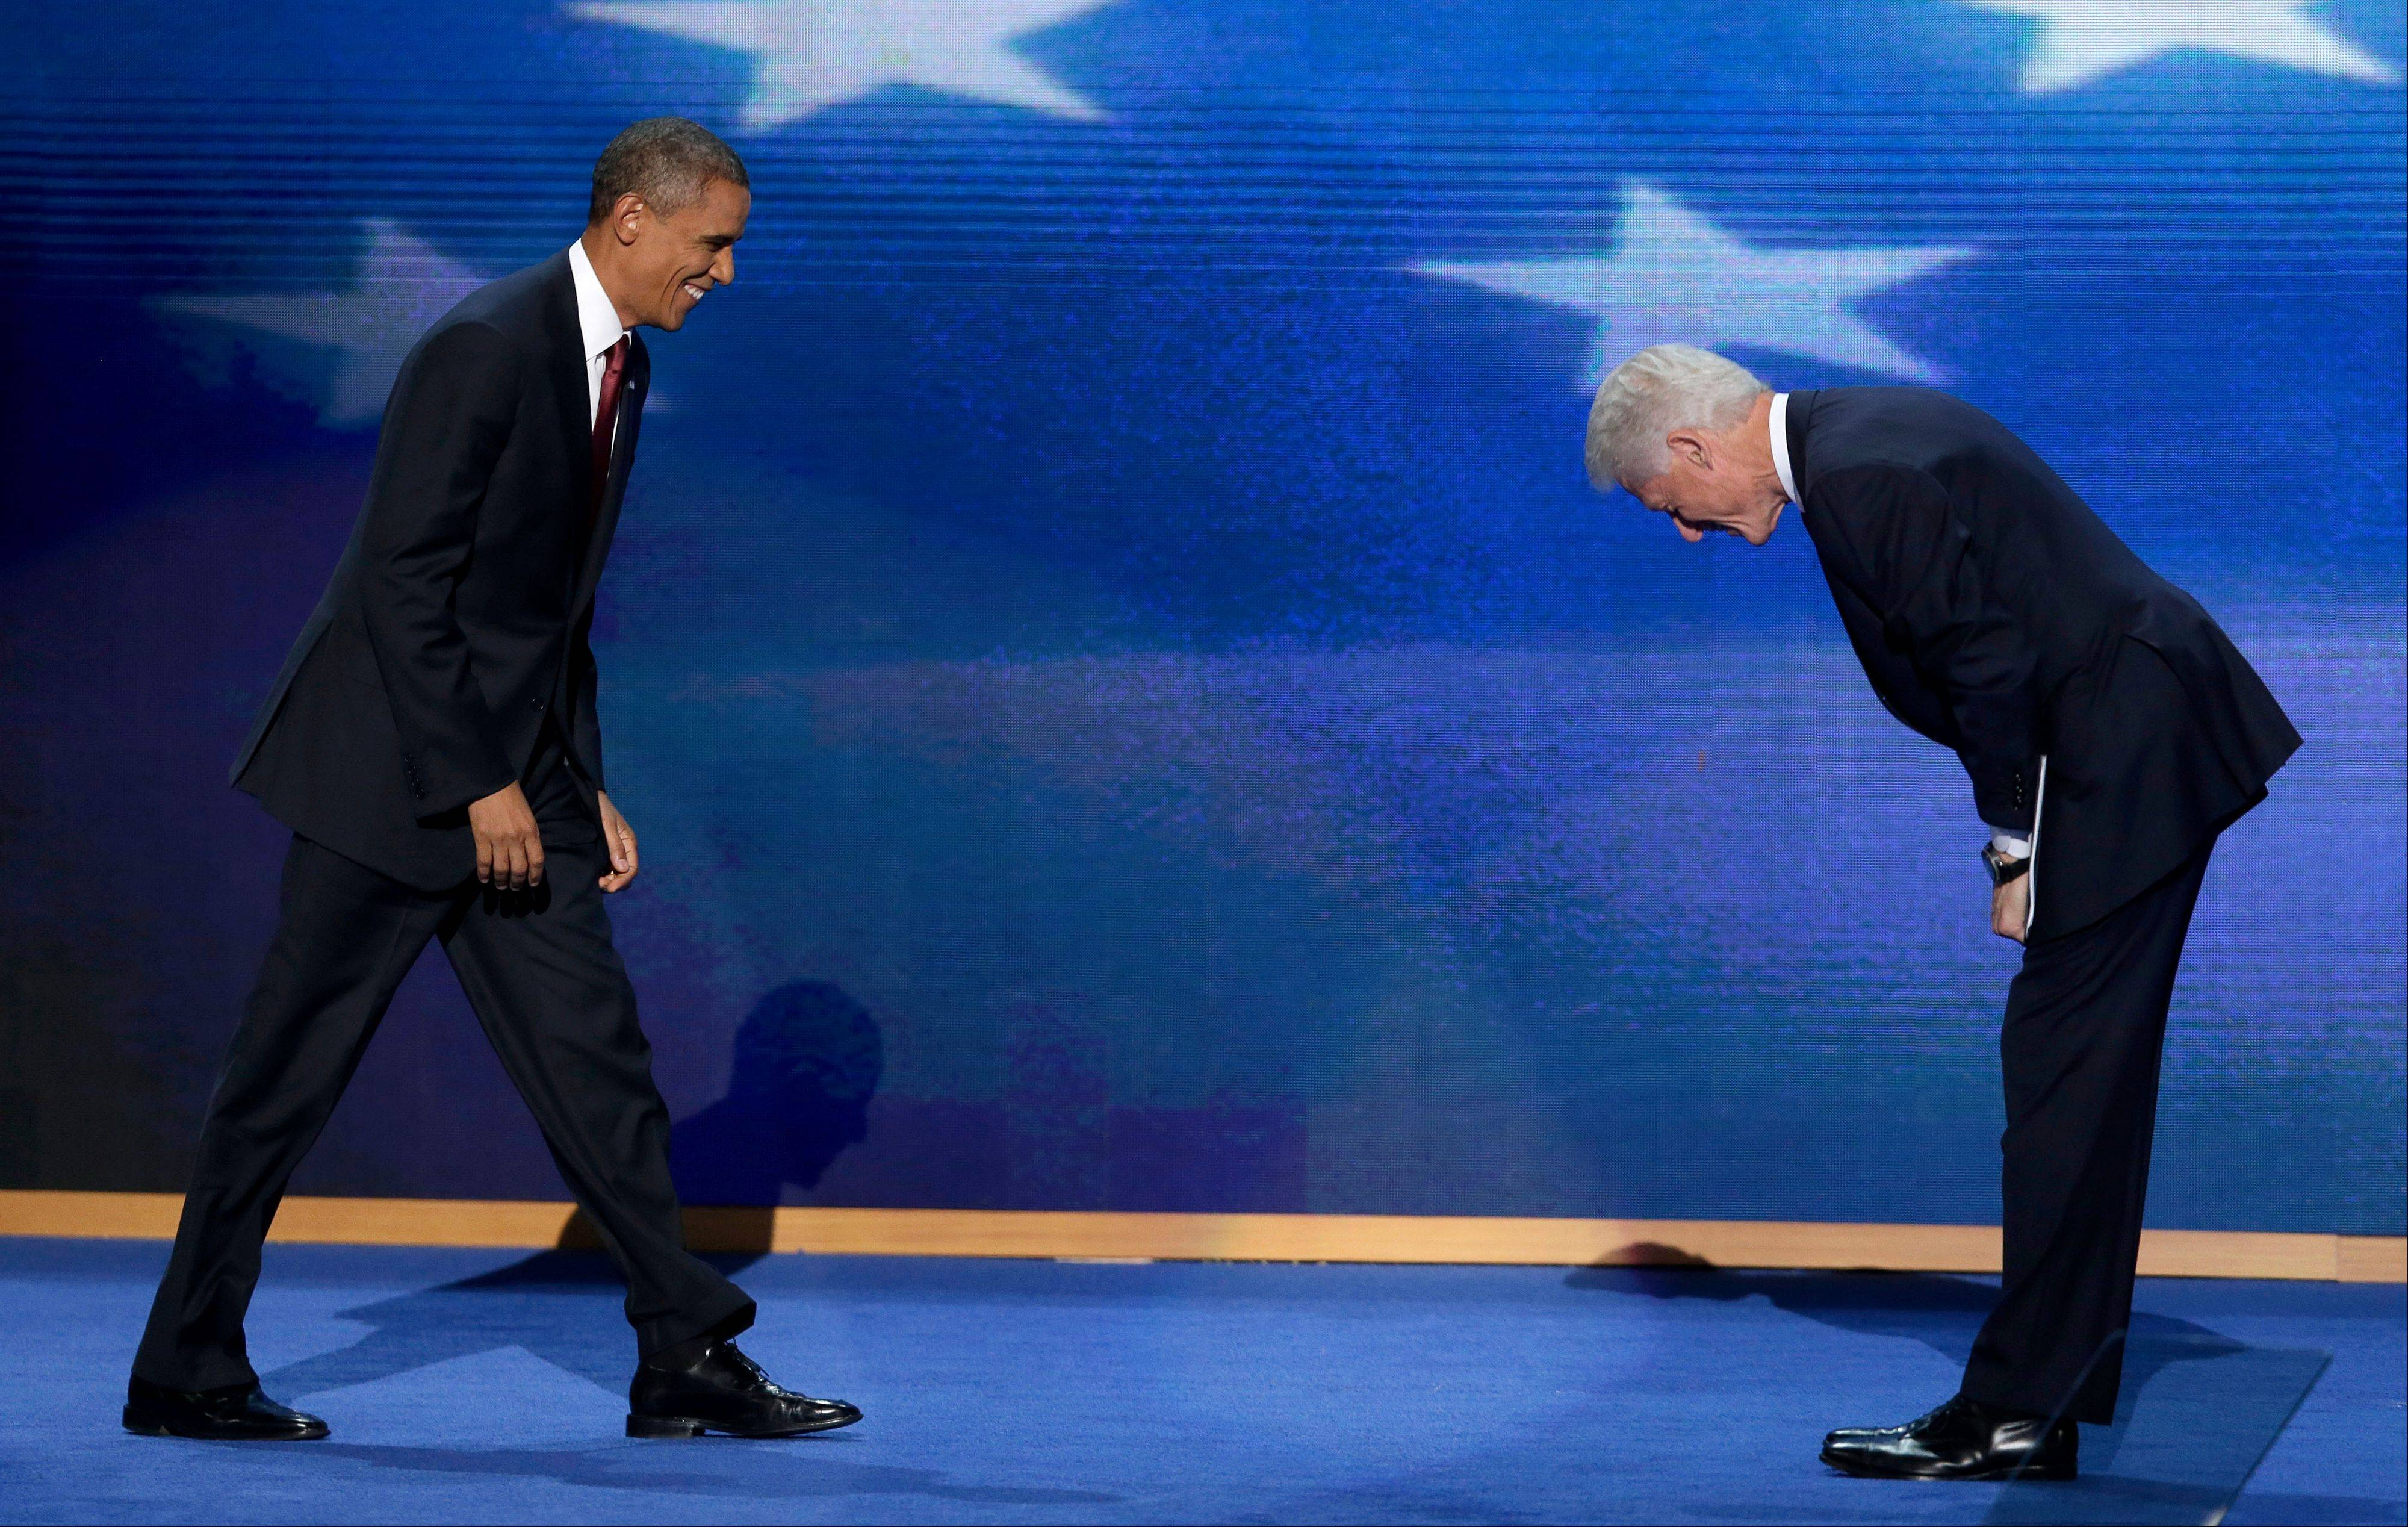 Former President Bill Clinton bows as President Barack Obama walks on stage after Clinton's address to the Democratic National Convention in Charlotte, N.C., on Wednesday.